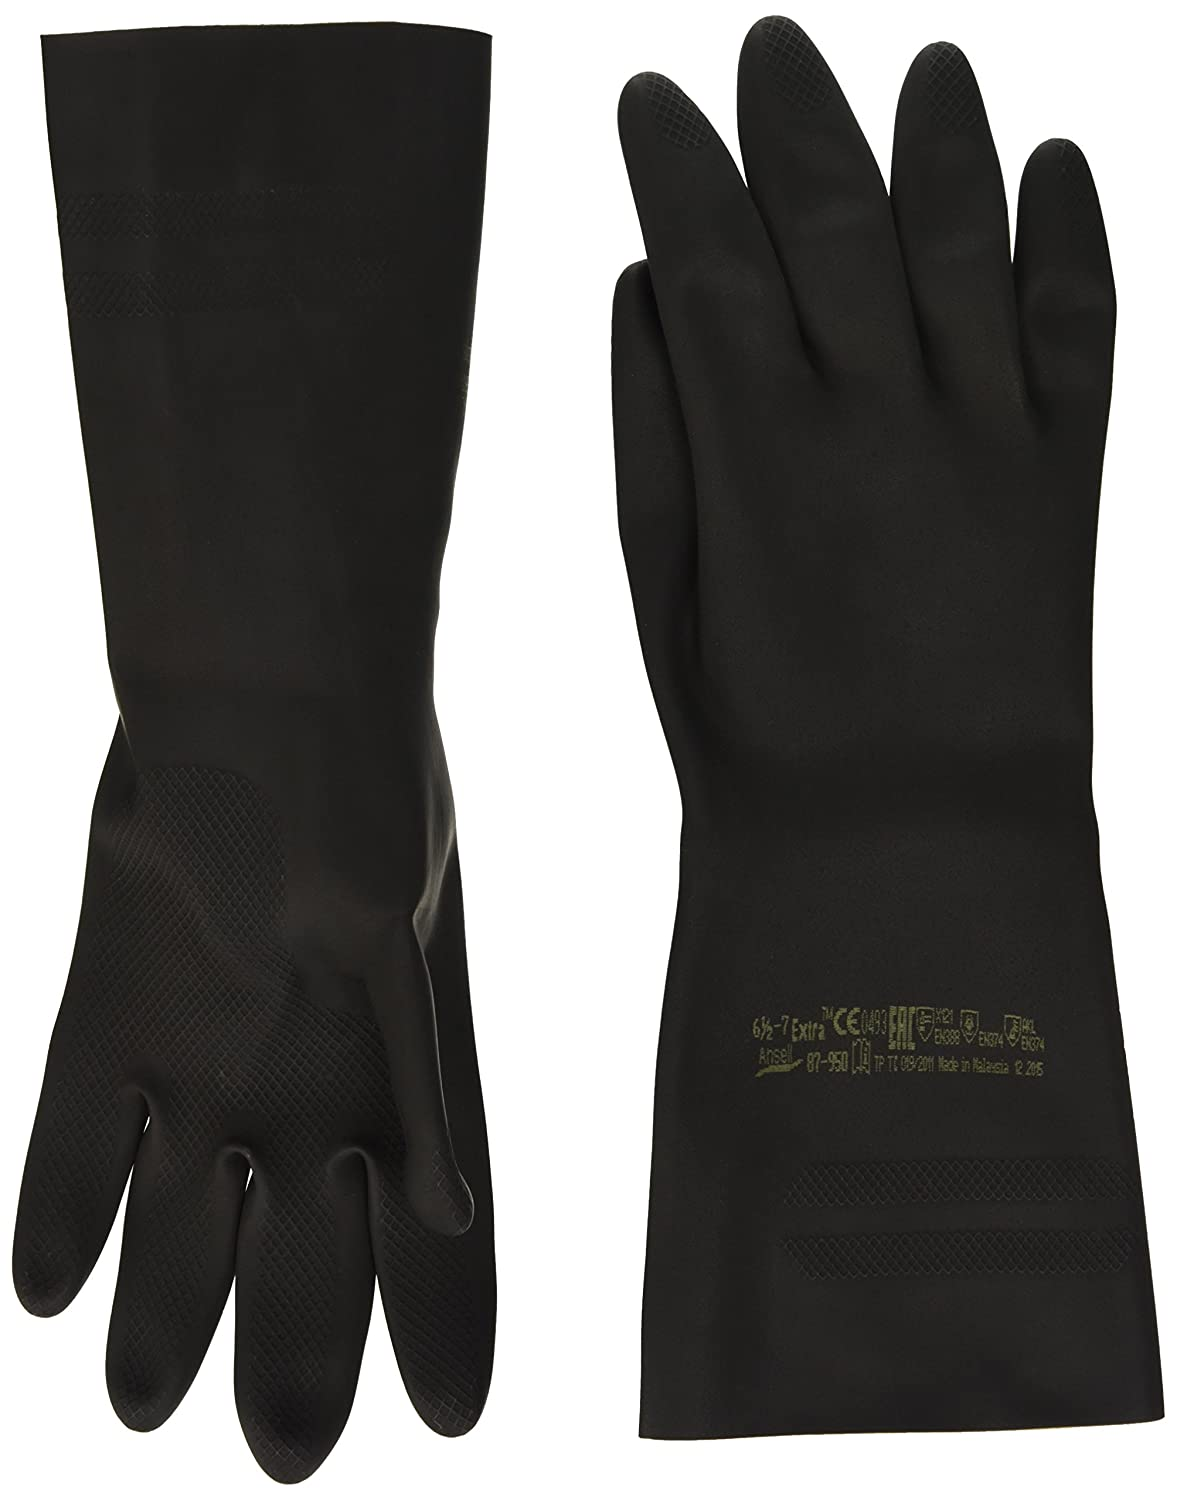 Ansell Extra 87-950 Natural rubber latex gloves, chemical & liquid protection, Black, Size 6.5-7 (Pack of 1 pair) Ansell Extra 87-950 / 6.5-7